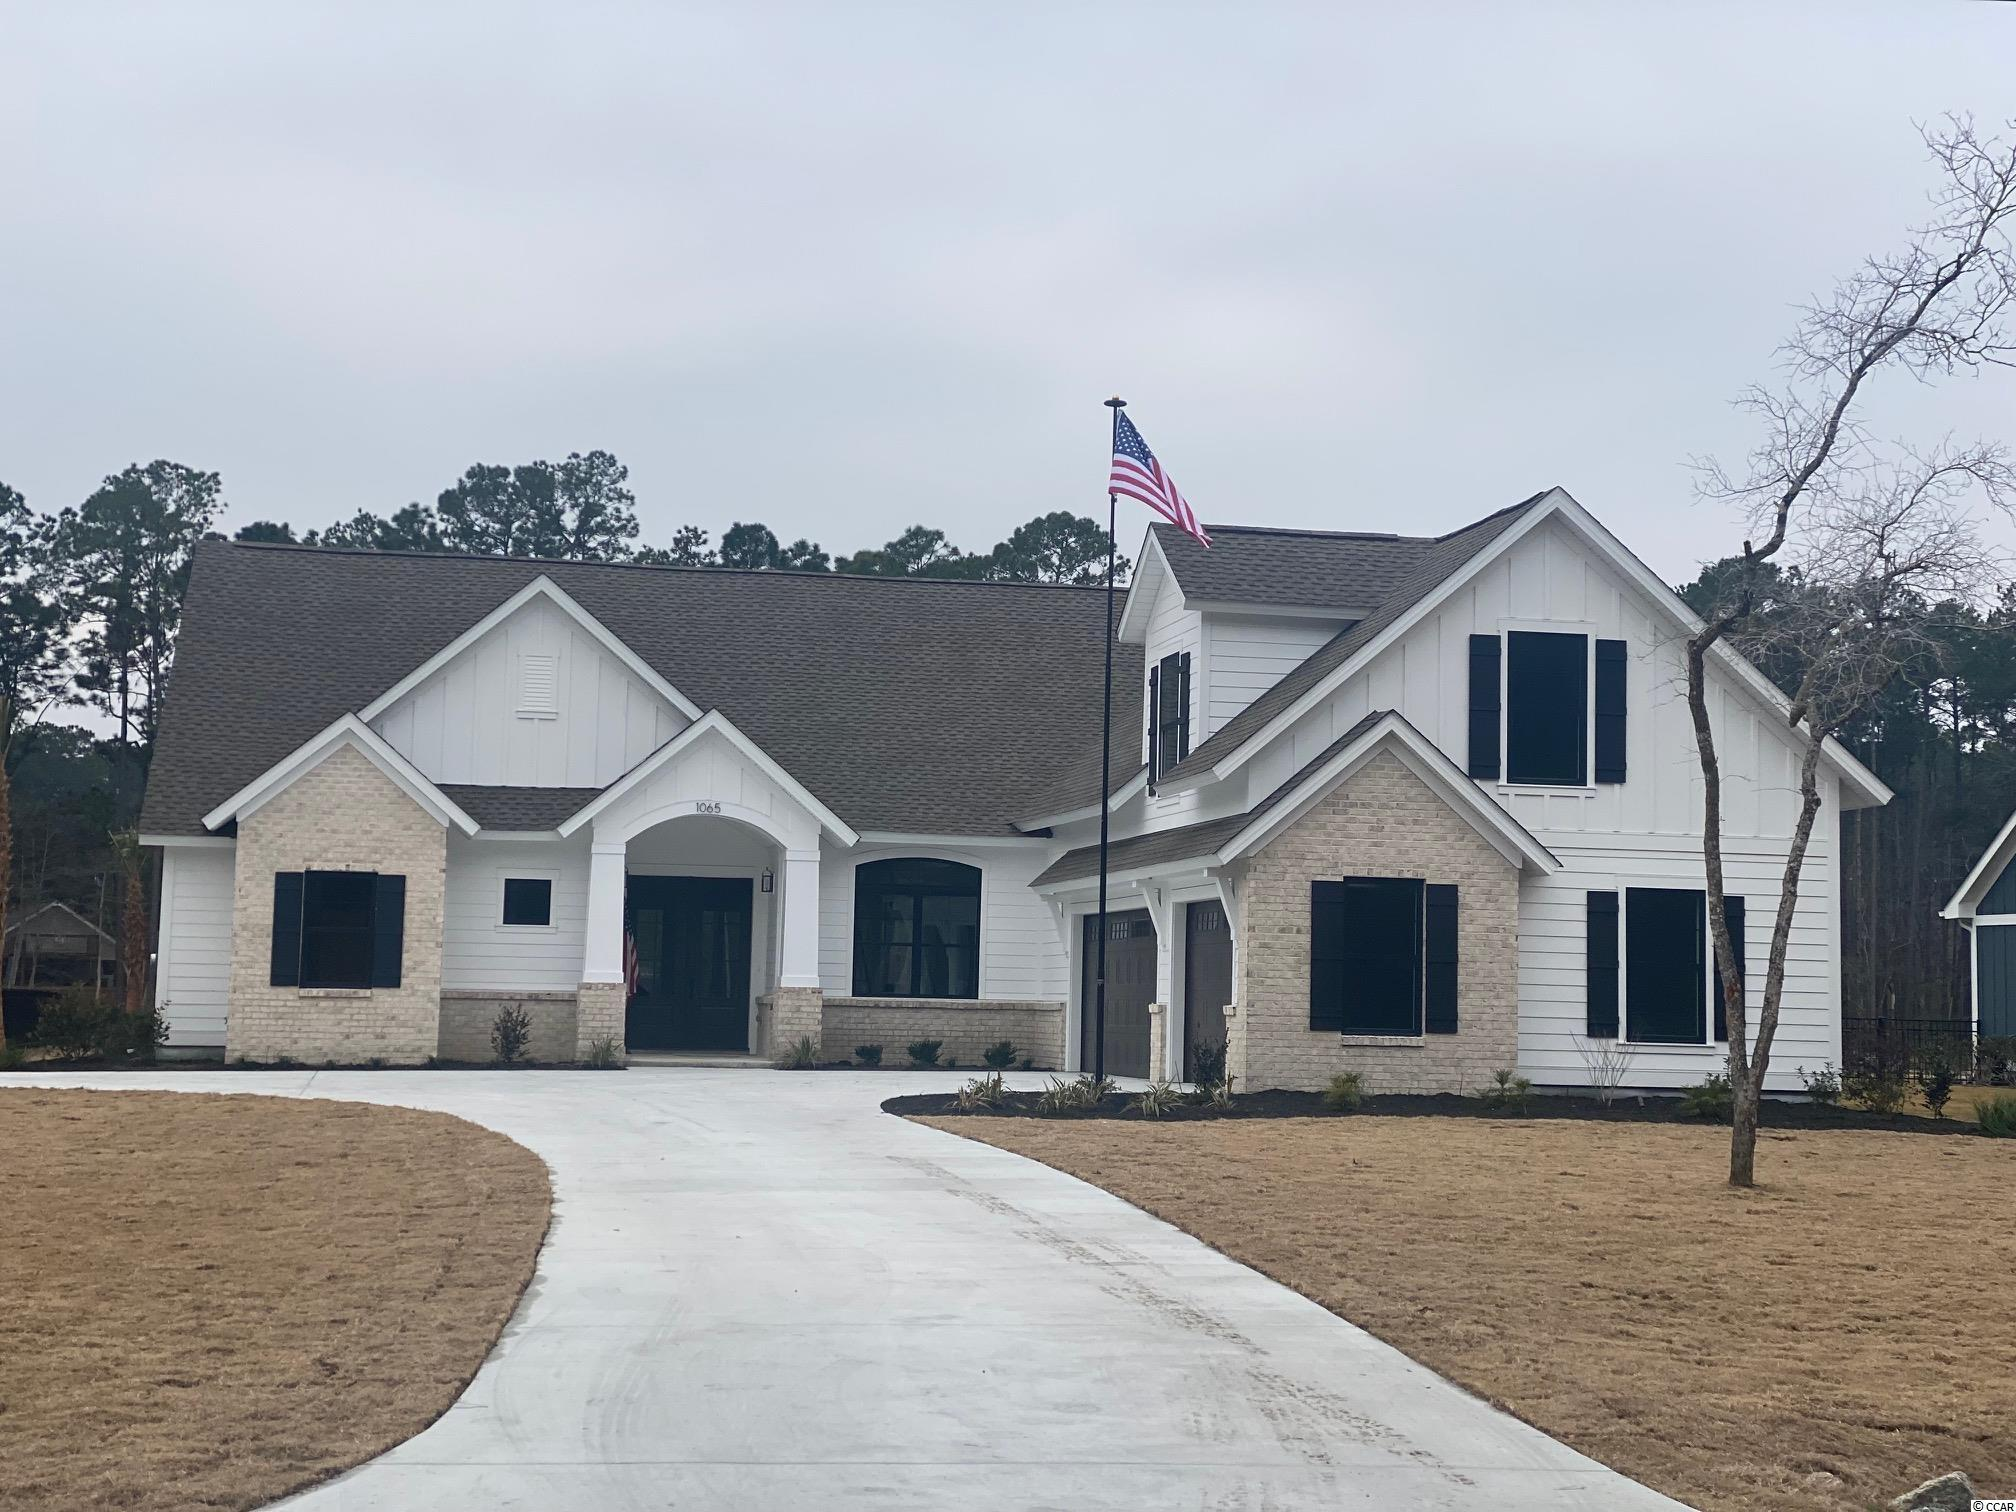 Welcome to BEAUMONT PARK in Pawleys Island!  New development just minutes from the beach, restaurants, grocery stores and more. 1.13 acre home site with NO HOA. Custom builder. Construction to begin Spring 2021. This  Westchester home plan is to be built with approx. 2907 Heated Square Feet.  Contemporary craftsman style 3 bedroom, 4.5  bath home with a bonus room and 3 car garage, dining room, breakfast nook, a 20 x 11 covered veranda and 15 x 12 patio off of large family room, and  an optional  screened porch off of the breakfast area. The master bedroom has 2 walk in closets, double tray ceilings, master bath has a double vanity, walk in tiled shower, and free standing tub and single tray ceilings. Two additional bedrooms with single tray ceilings, are located opposite side of home with their own private baths. A half bath is located off of the family room. A laundry room and a bonus room with a full bath that could be a 4th bedroom.  Hardie plank, shake, board & batten siding along with brick accenting exterior. This home has many amazing features such as 10 foot ceilings in main living area and the bedrooms and bonus room have 9 ft ceilings. Rounded sheet rock corners, crown molding in main living areas, custom melamine shelvng in pantry and master closets.  An open floor plan with a large great room with a fireplace and custom built-ins on each side of fireplace and cathedral ceilings and dining room also has double tray ceilings.  Beautiful interior features throughout main living area that include granite counter tops and tile backsplash in kitchen, custom cabinets throughout and a rannai tankless hot water heater.  The main living areas and master bedroom have tile flooring or hardwood flooring and other bedrooms and bonus are carpet. The  bathrooms have cultured marble counter tops and tile flooring. Come see Beaumont Park and start living the Pawleys Island lifestyle! . Optional upgrades available upon request. . A retention pond will run along the back of property near property line. There will still be plenty of space in backyard for a pool, outdoor entertaining and relaxation.  Please inquire for details, price is subject to change.